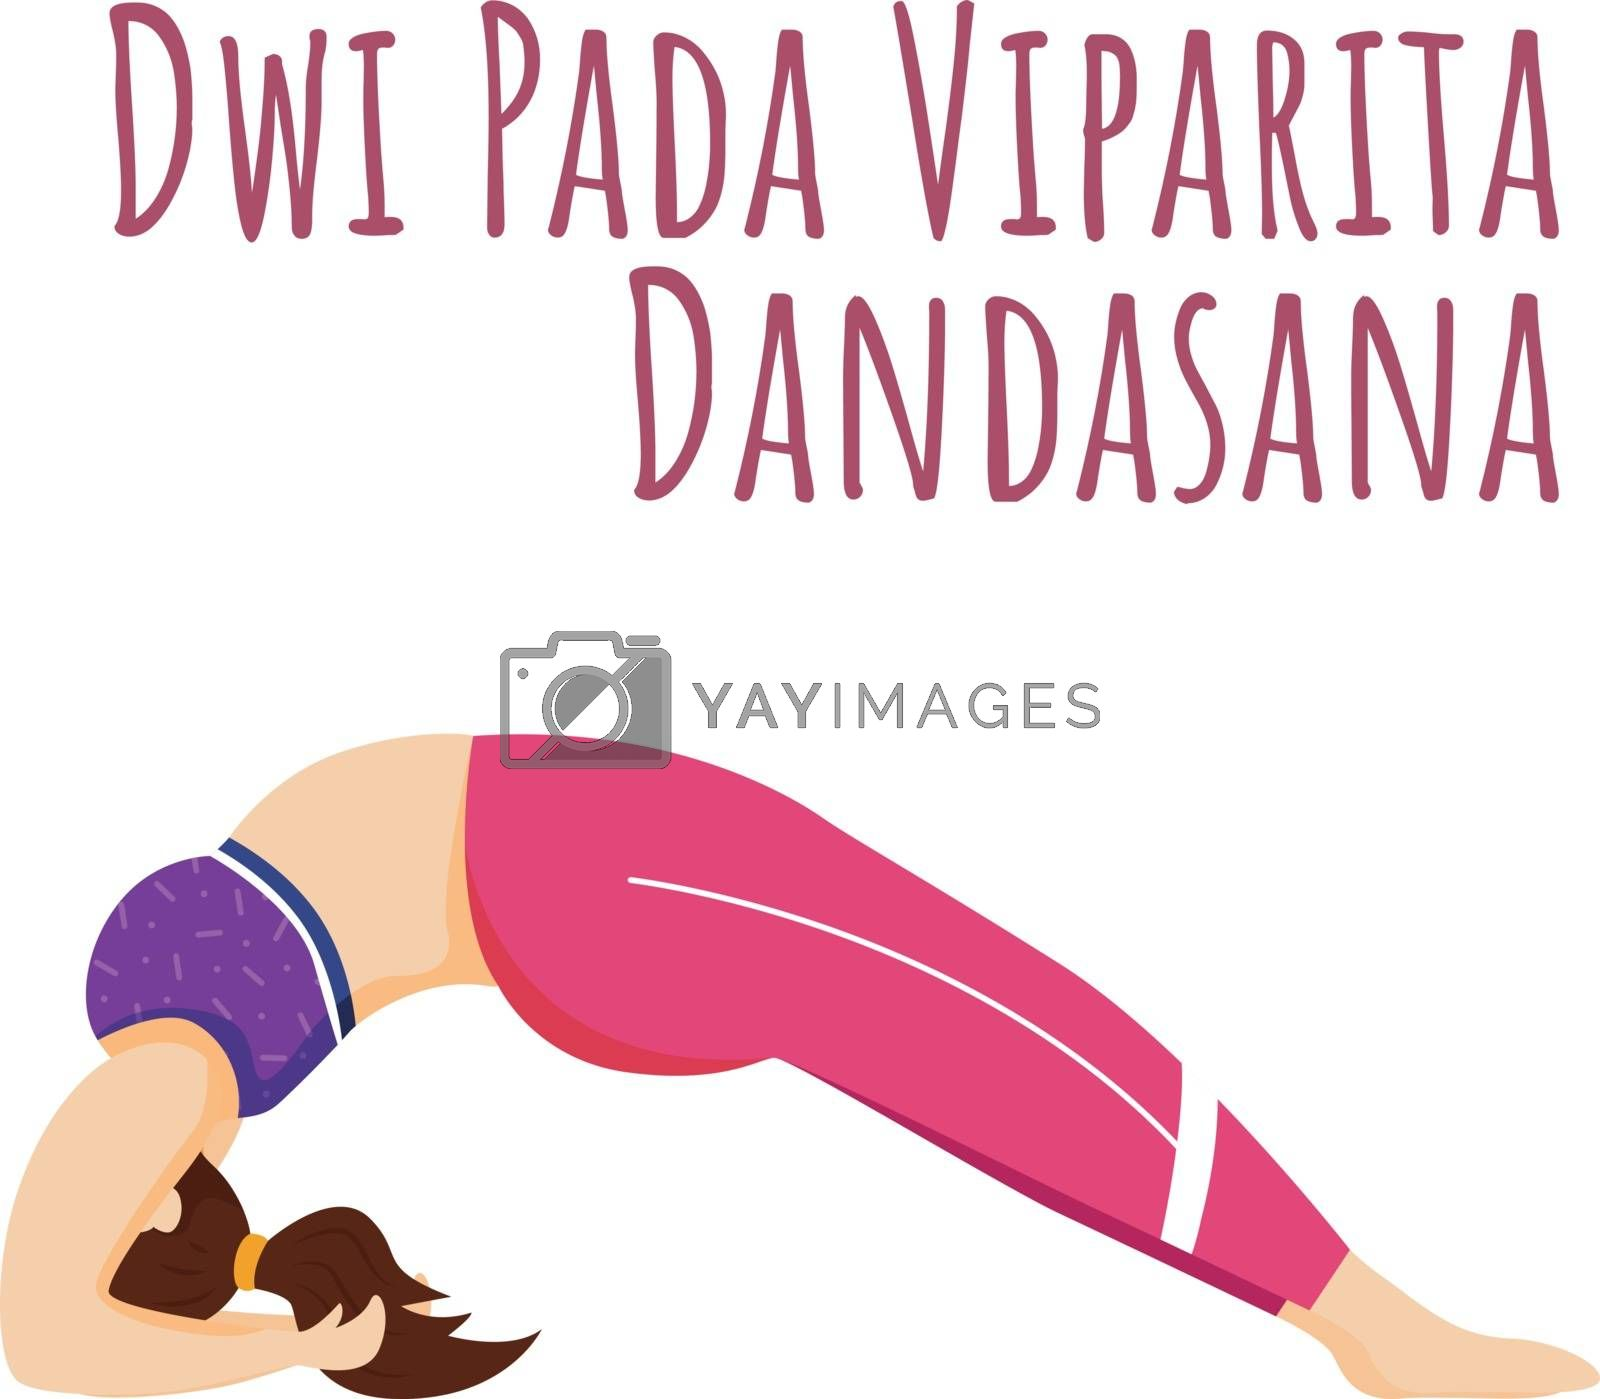 Dwi Pada Viparita Dandasana social media post mockup. Dropping back to Bench. Yoga. Web banner design template. Social media booster, content layout. Poster, printable card with flat illustrations